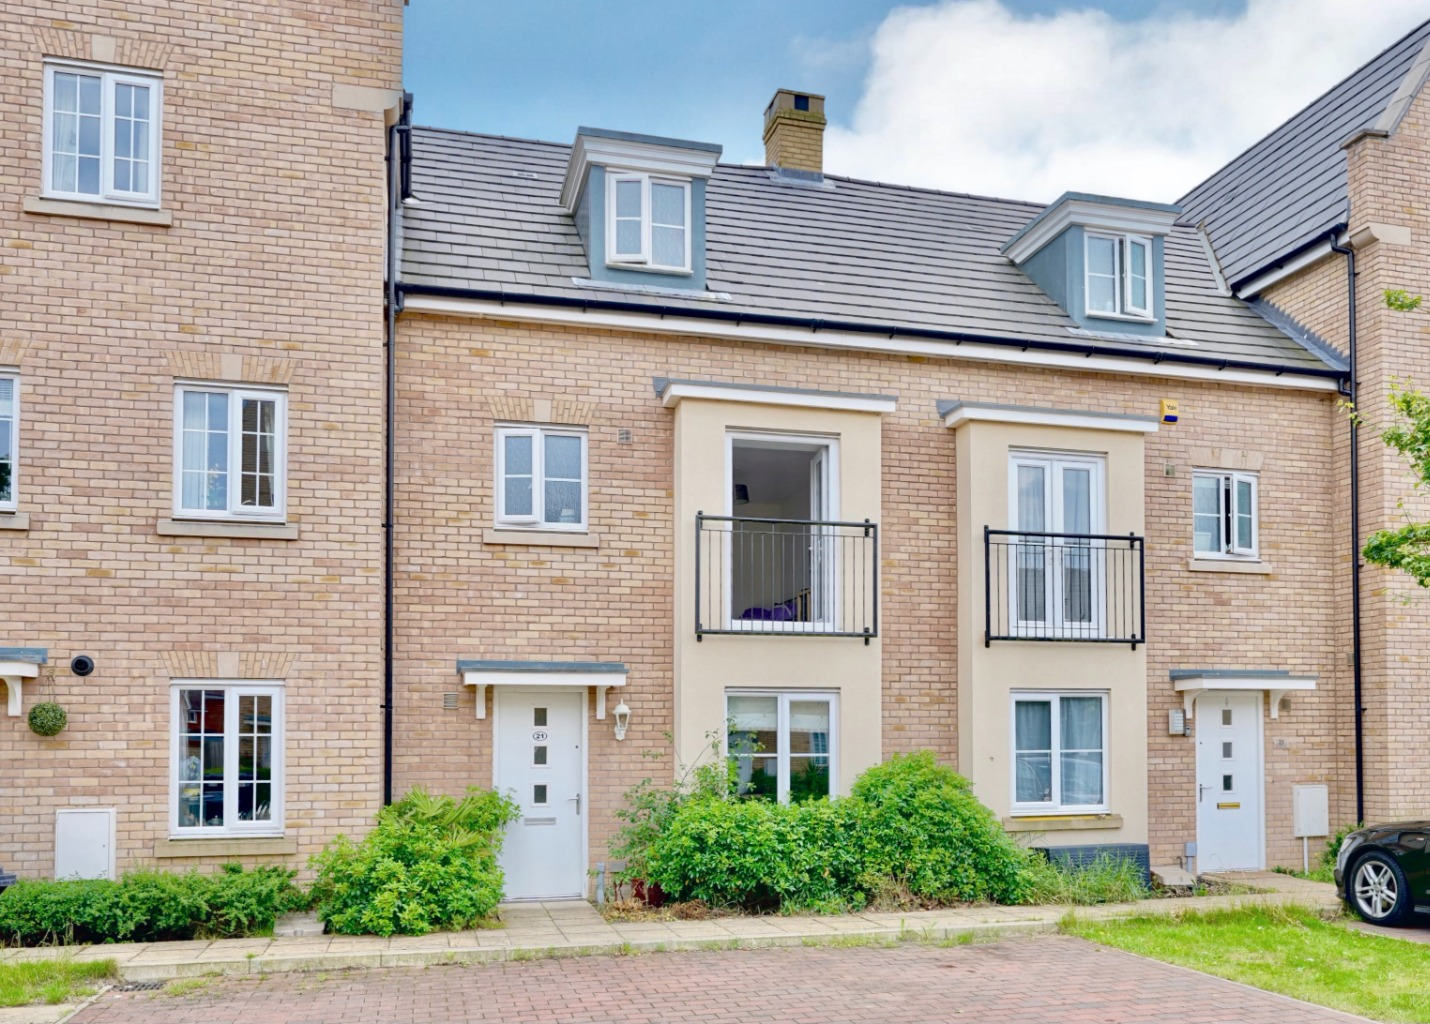 4 bed town house for sale in Buttercup Avenue, St. Neots, PE19